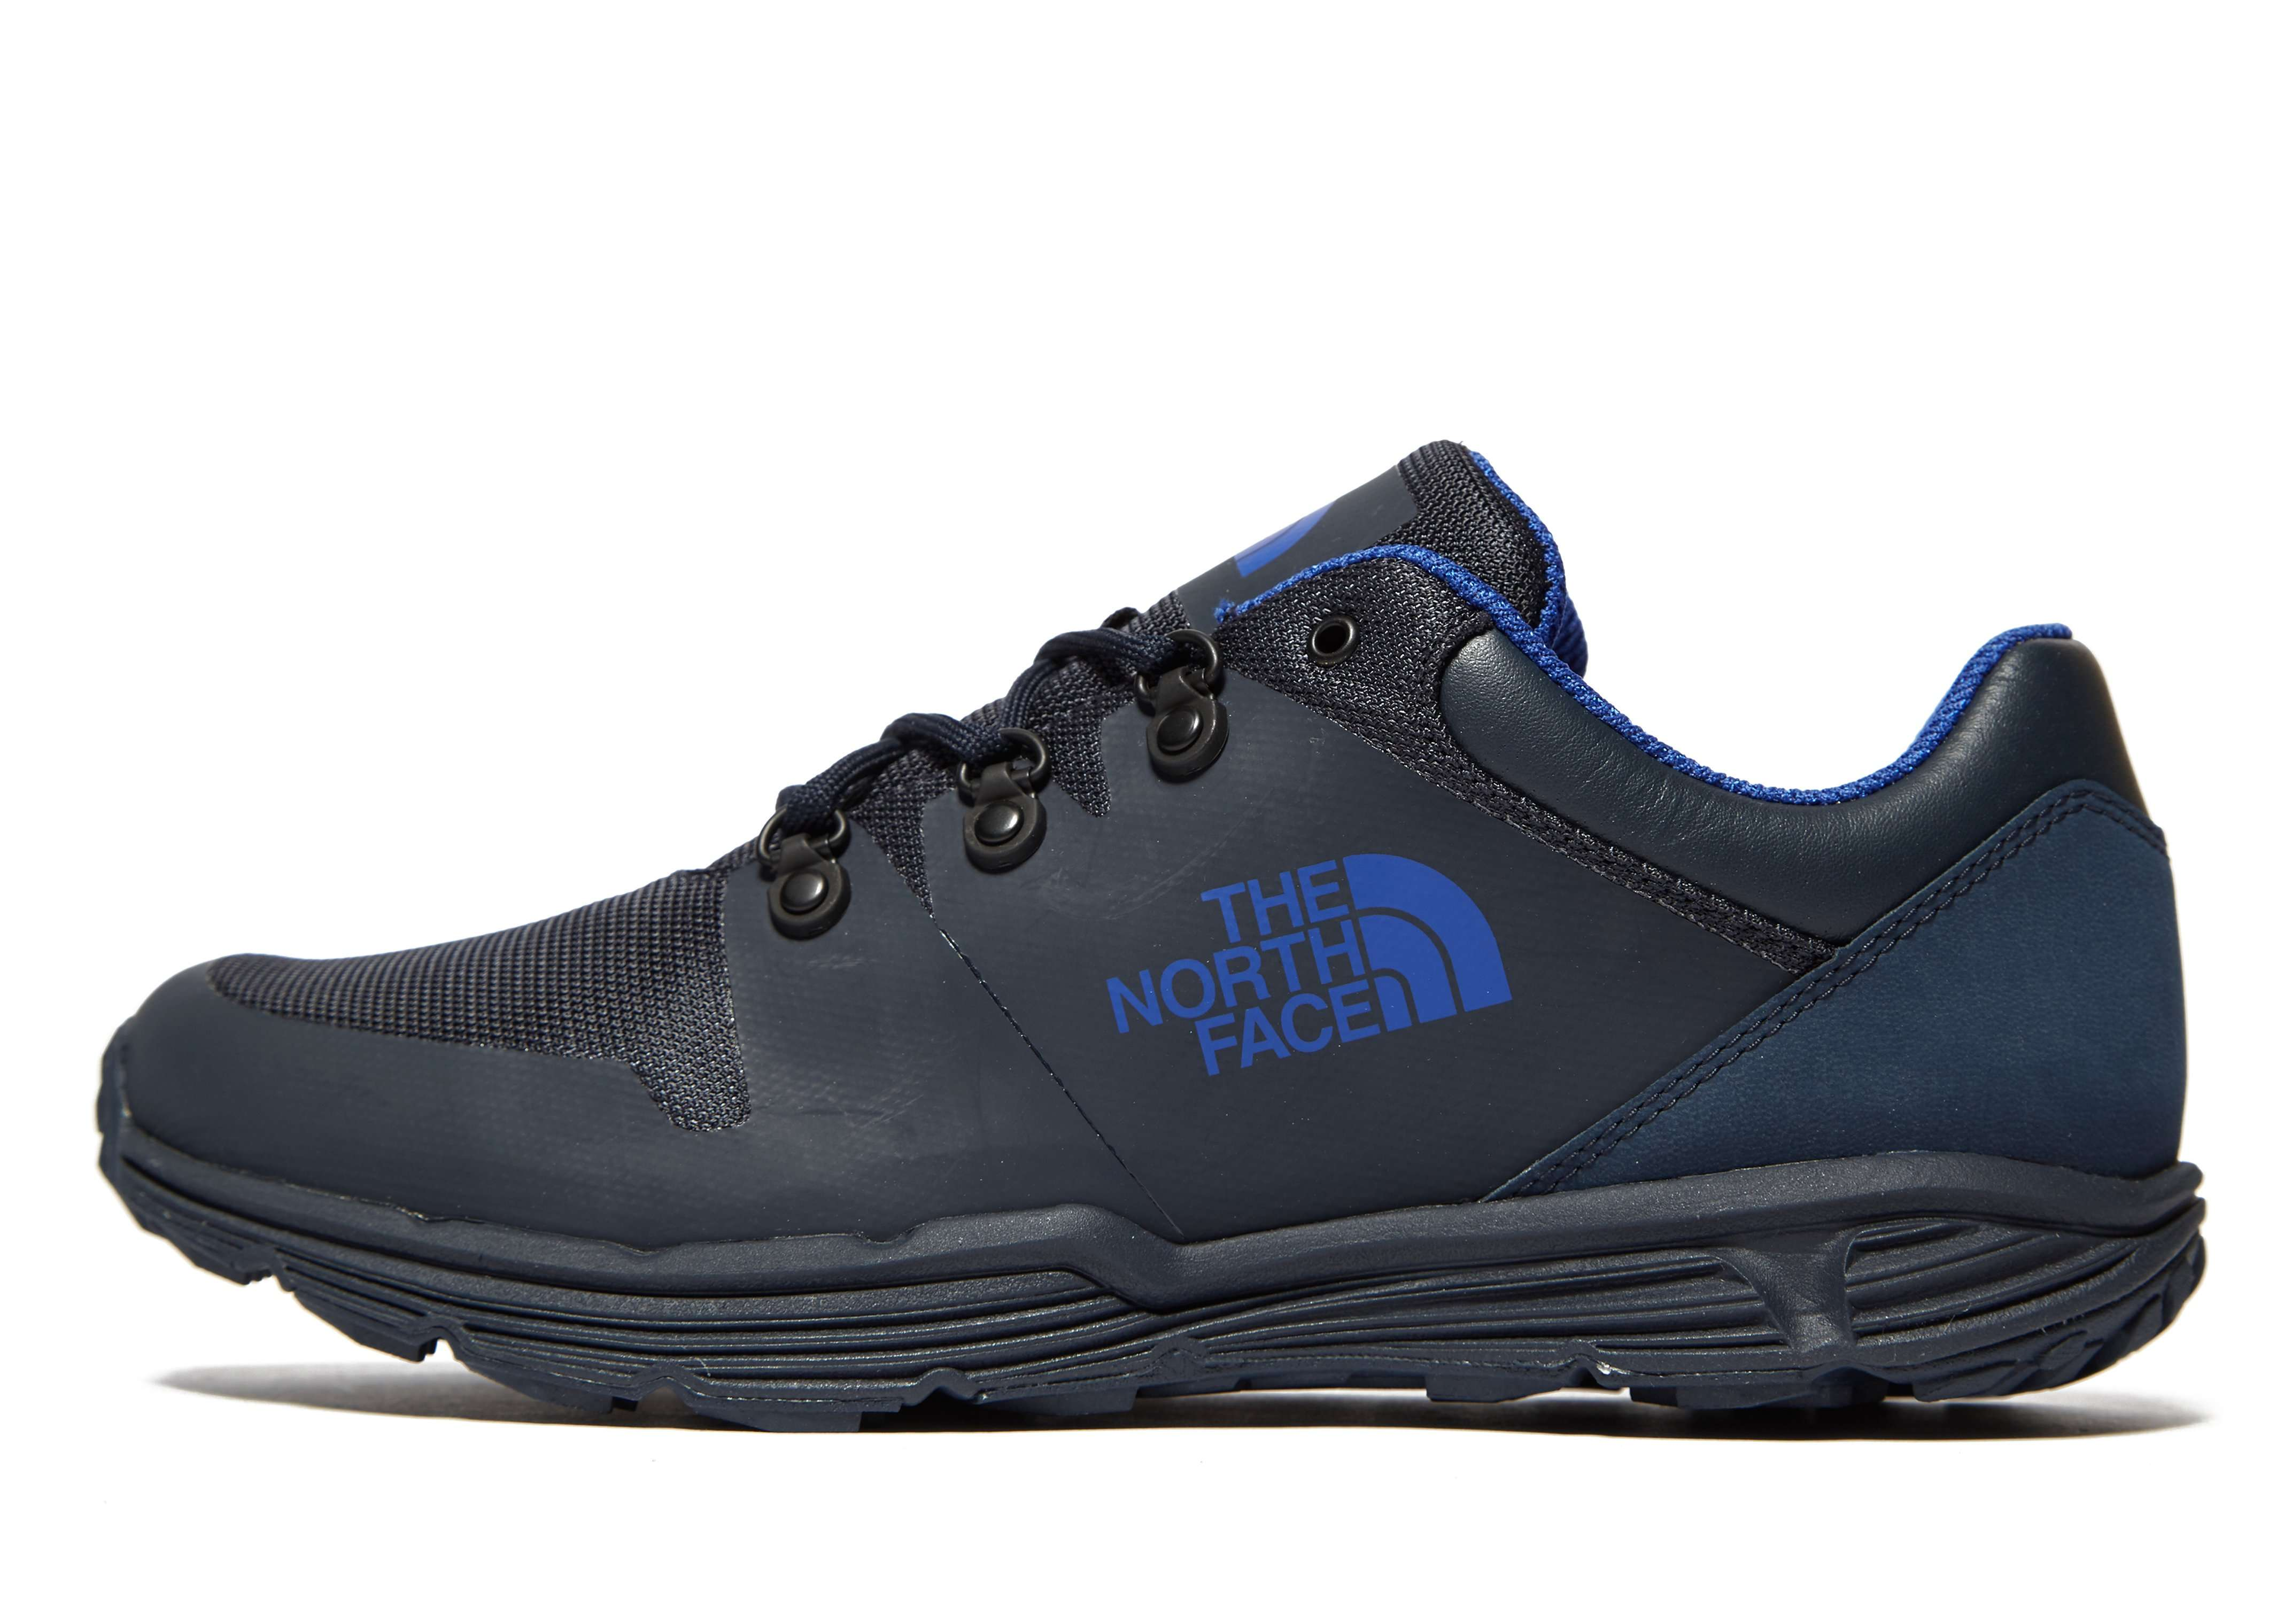 The North Face Litewave JXT Low - Men's Shoes and Boots - Blue 295392